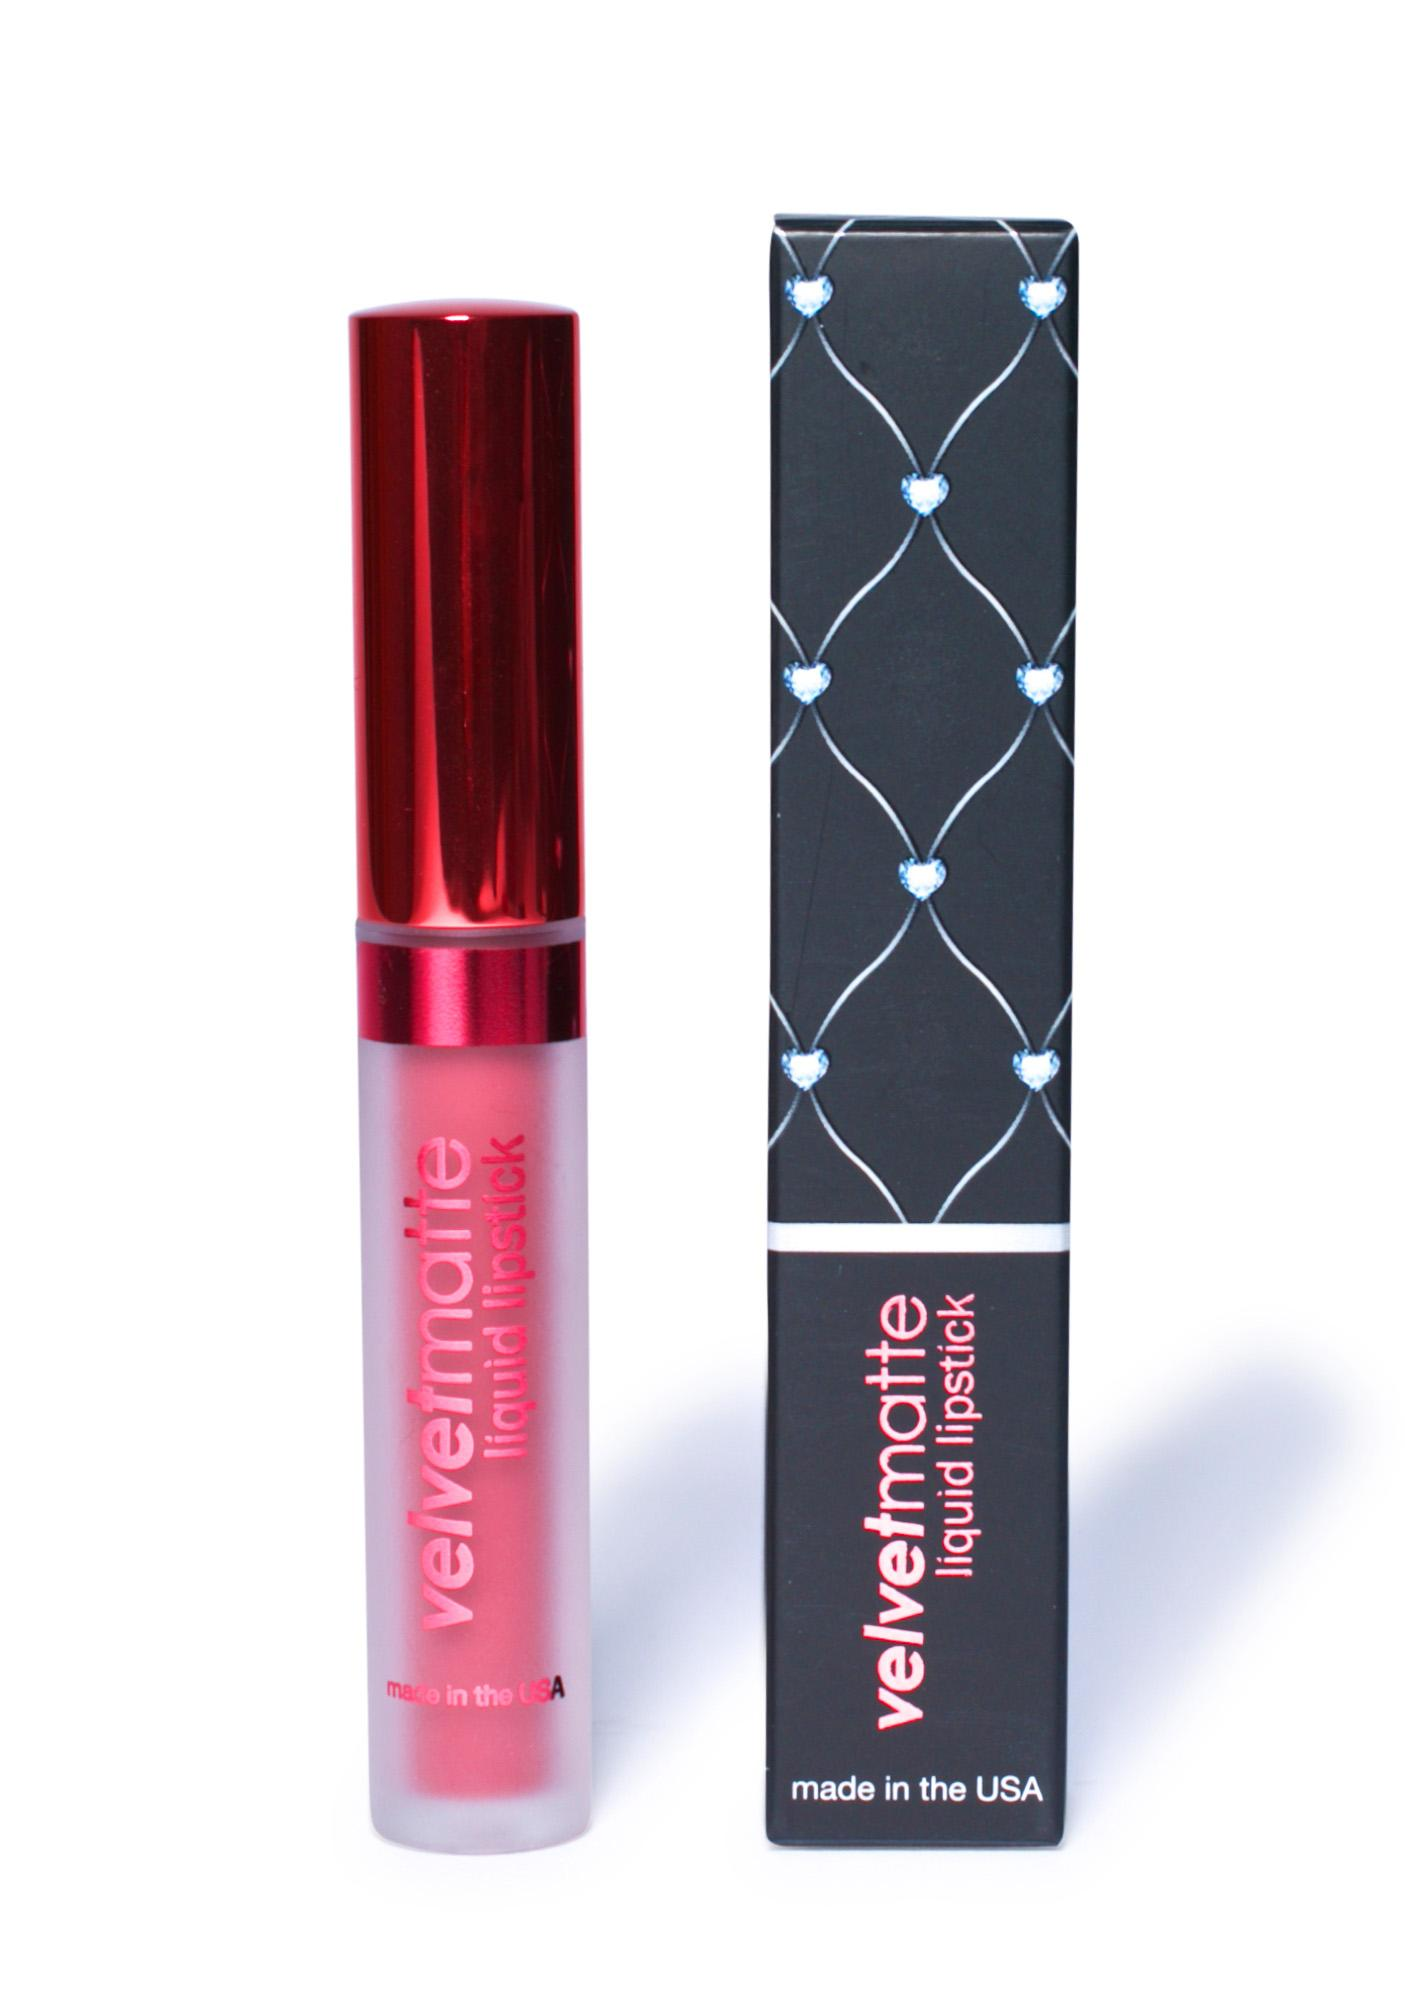 LA Splash Seductress Velvet-Matte Liquid Lipstick